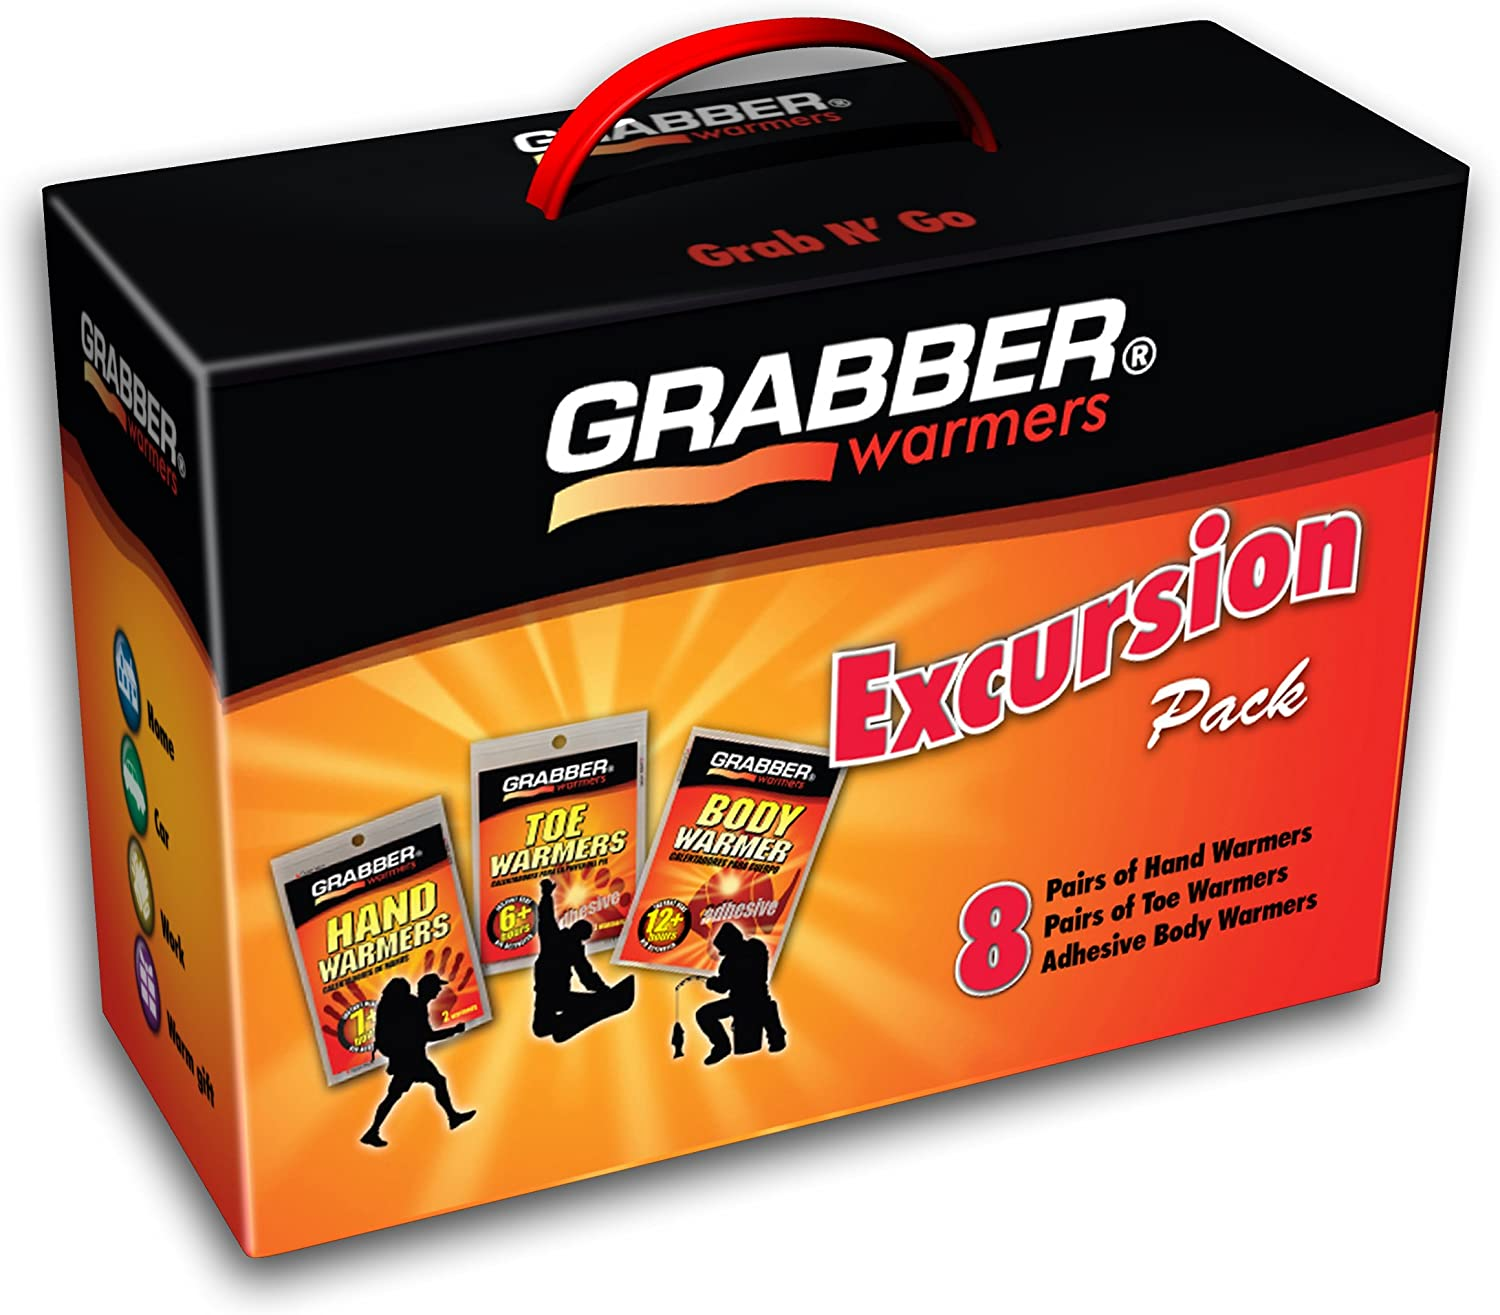 Grabber Warmers Inexpensive Excursion Multi-Pack 8 Ultra-Cheap Deals Box Pair Warmer